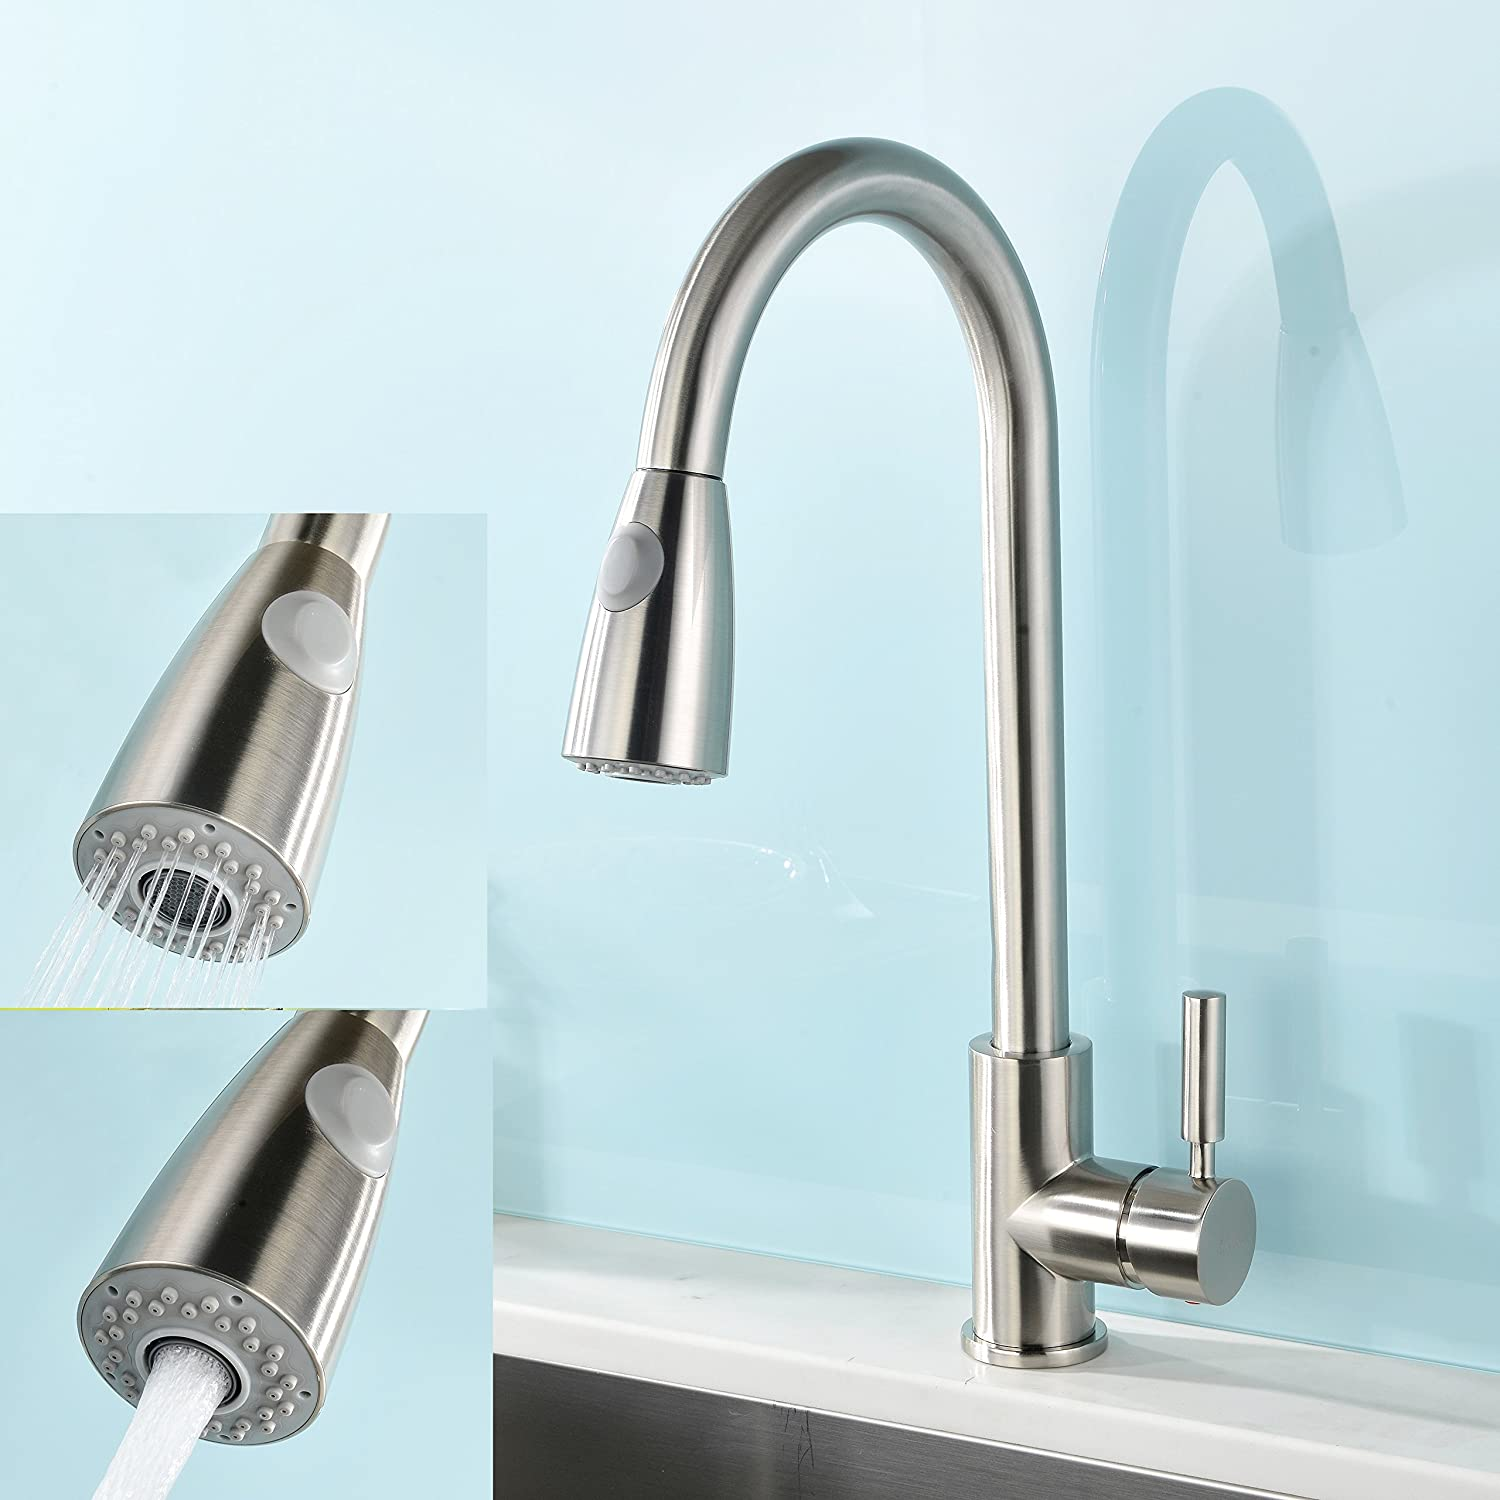 vapsint modern stainless steel single handle single hole pull out spray kitchen faucet brushed nickel - Kitchen Faucet